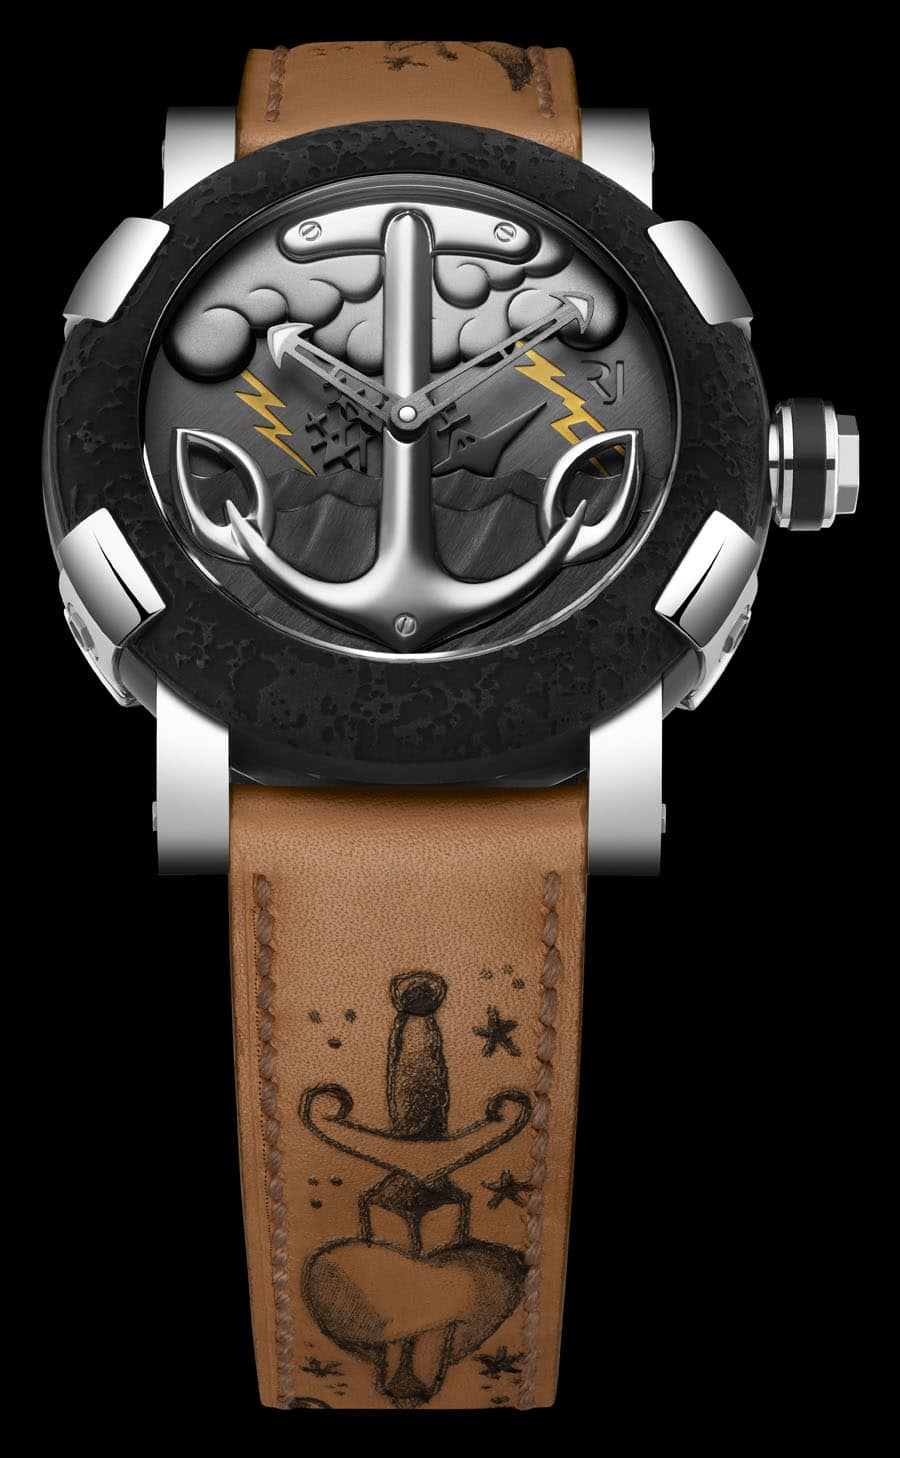 Romain Jerome: Tattoo DNA